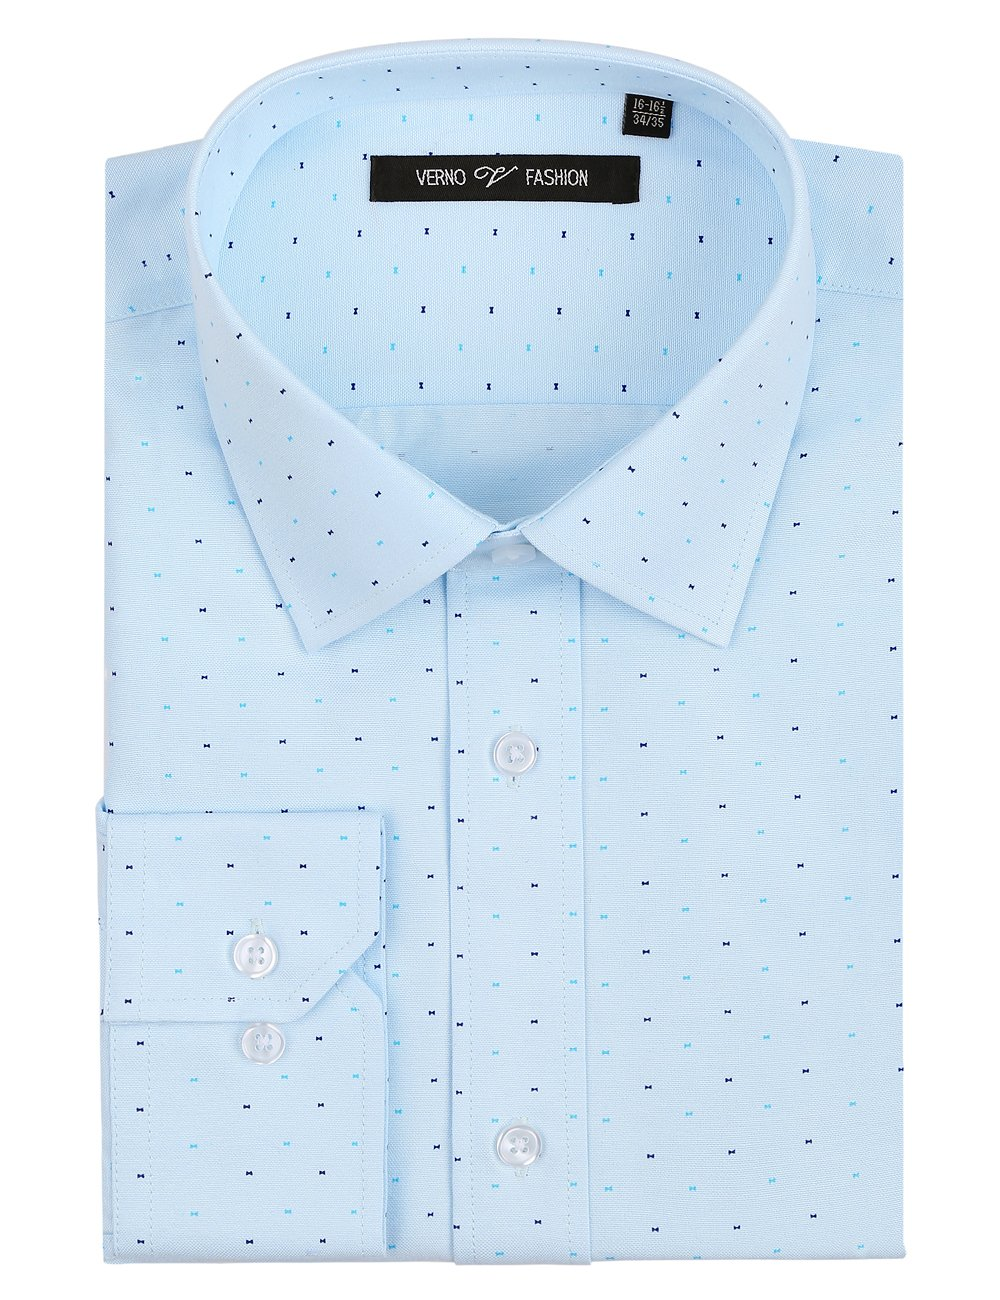 Verno Fashion Men's Printed Bow Tie Classic Fit Long Sleeve Dress Shirt- Available in More Colors (17-17 1/2-34/35, Light Blue)